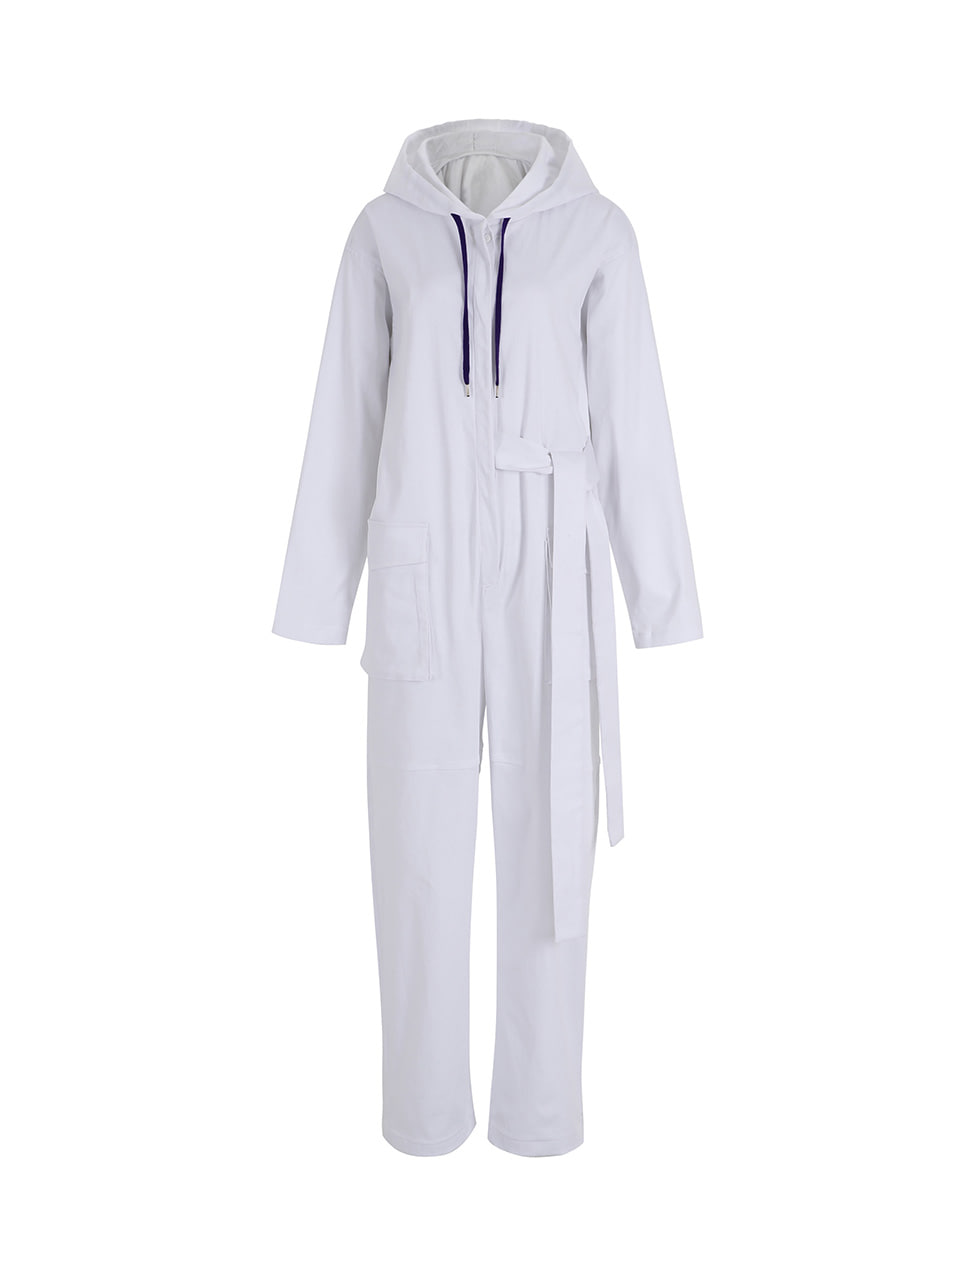 GUKAHooded jumpsuit -white